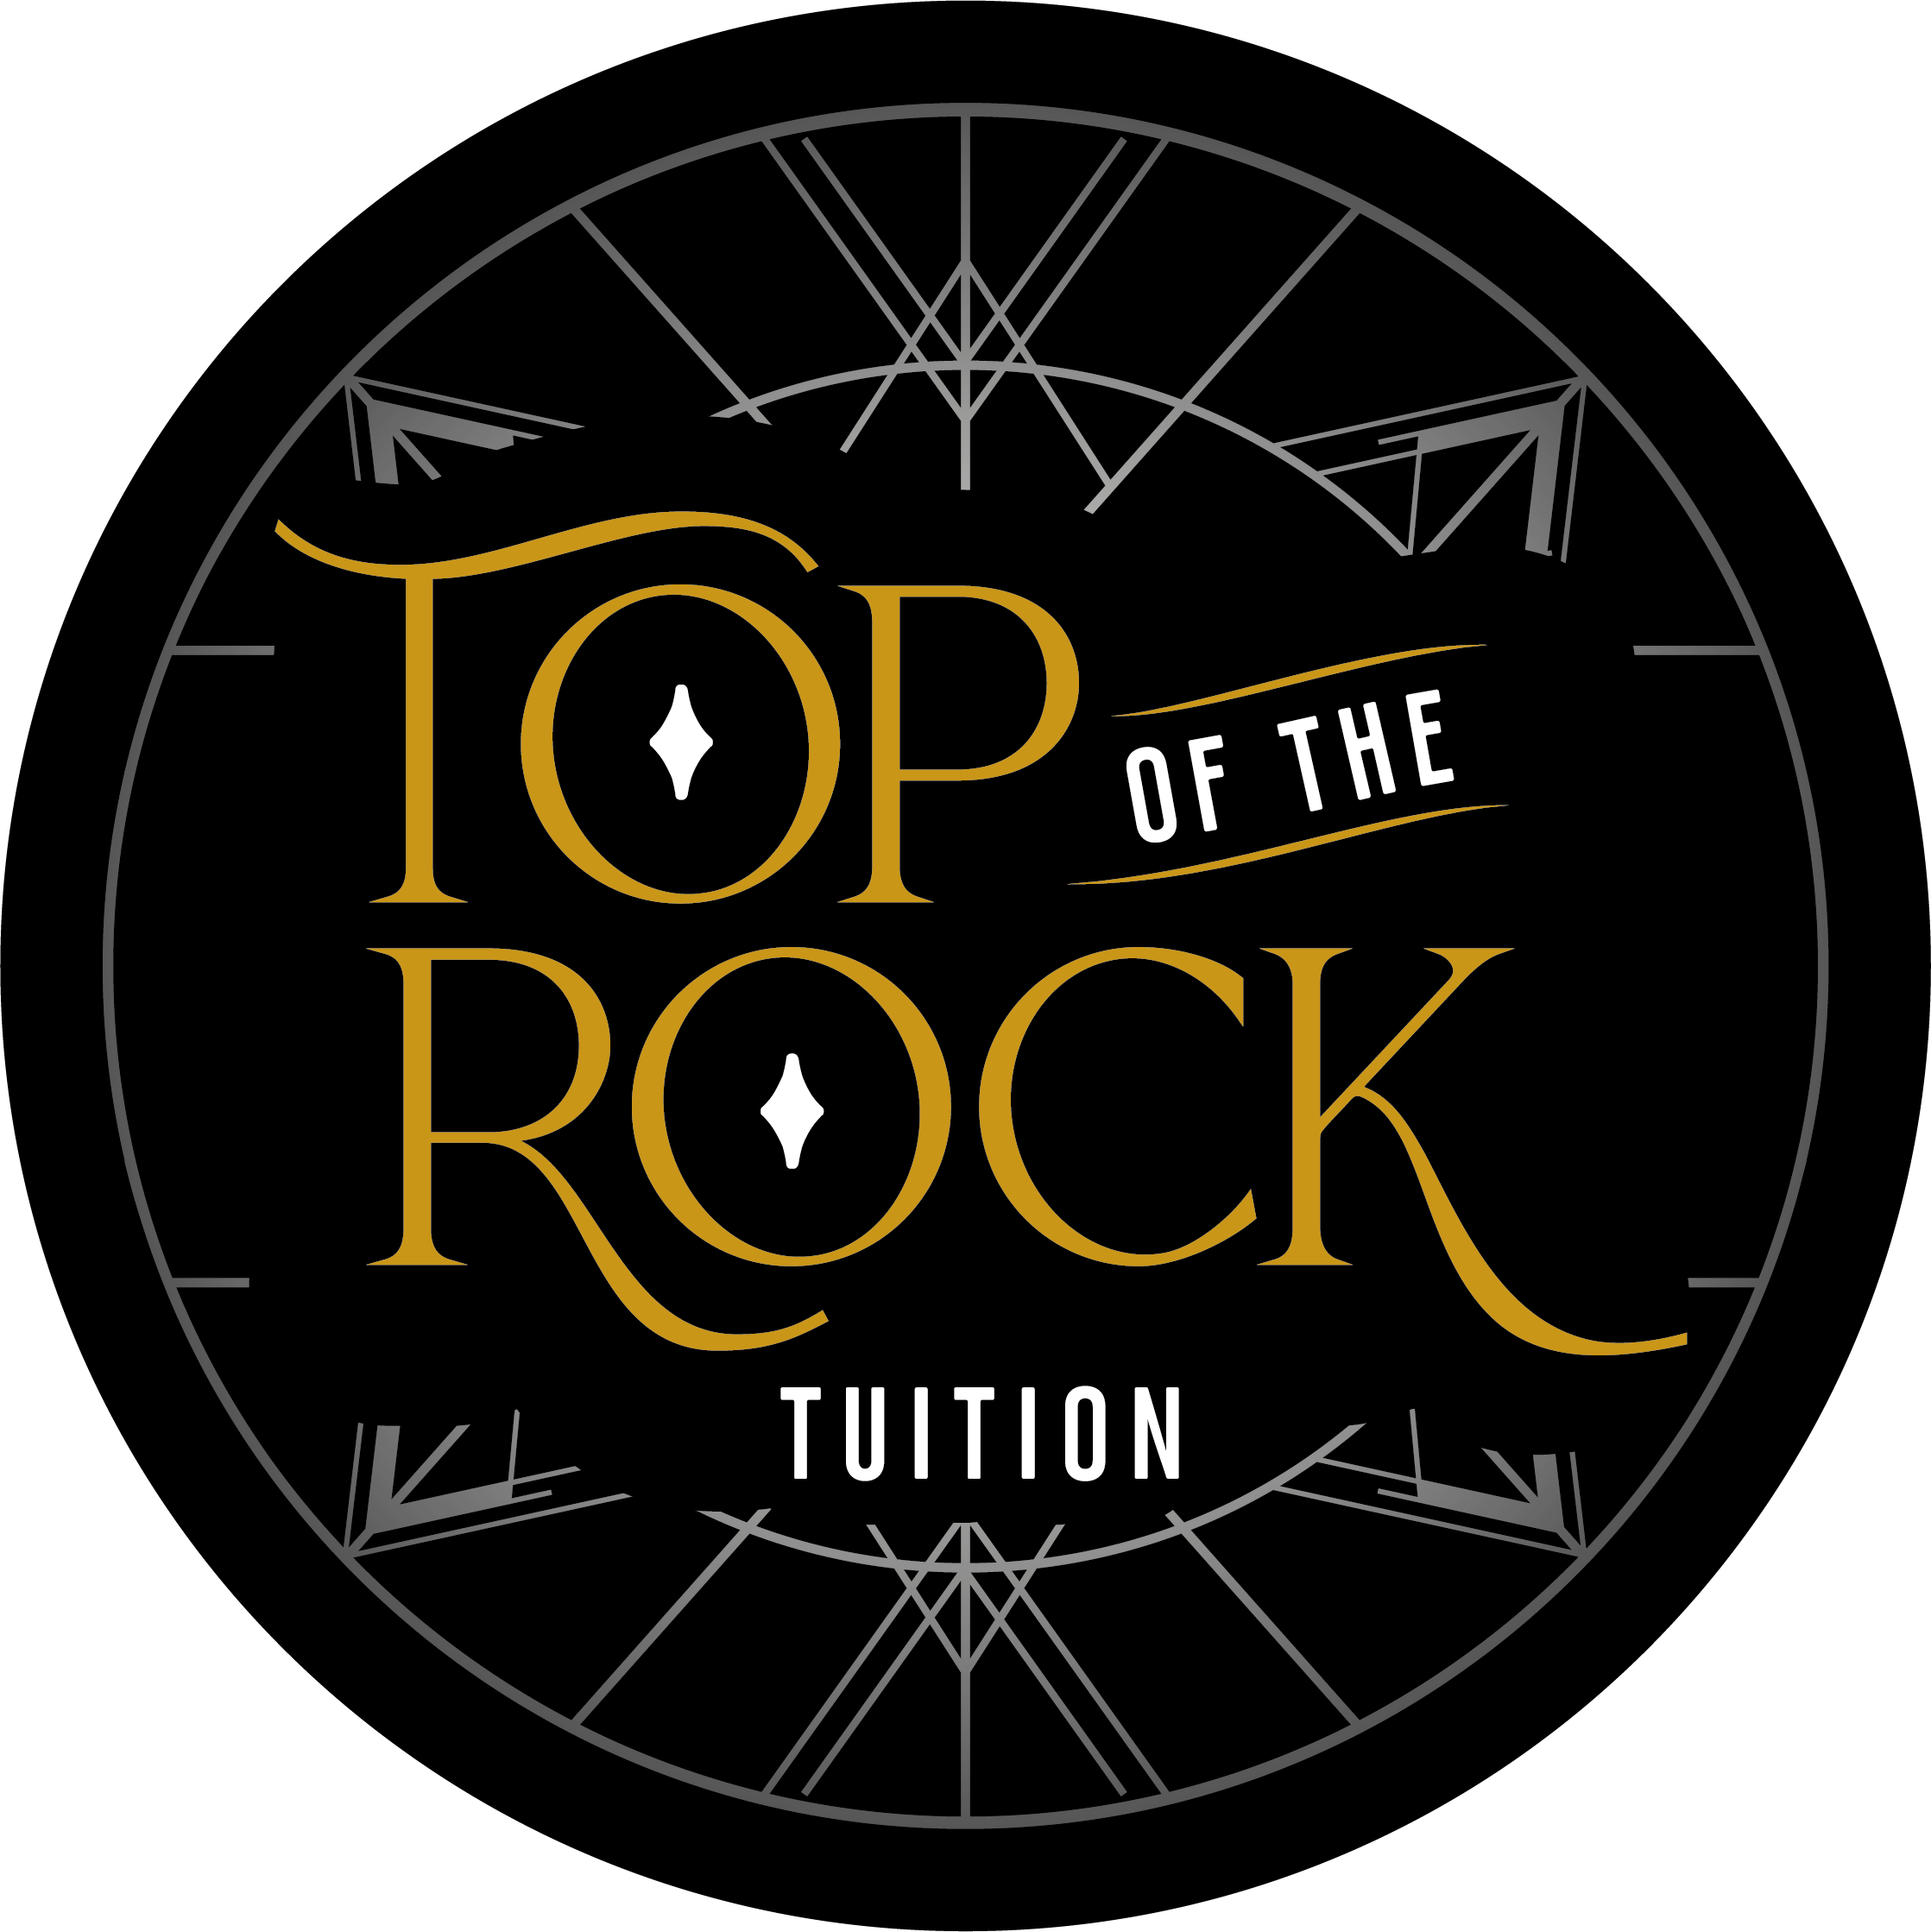 Top of the Rock Tuition